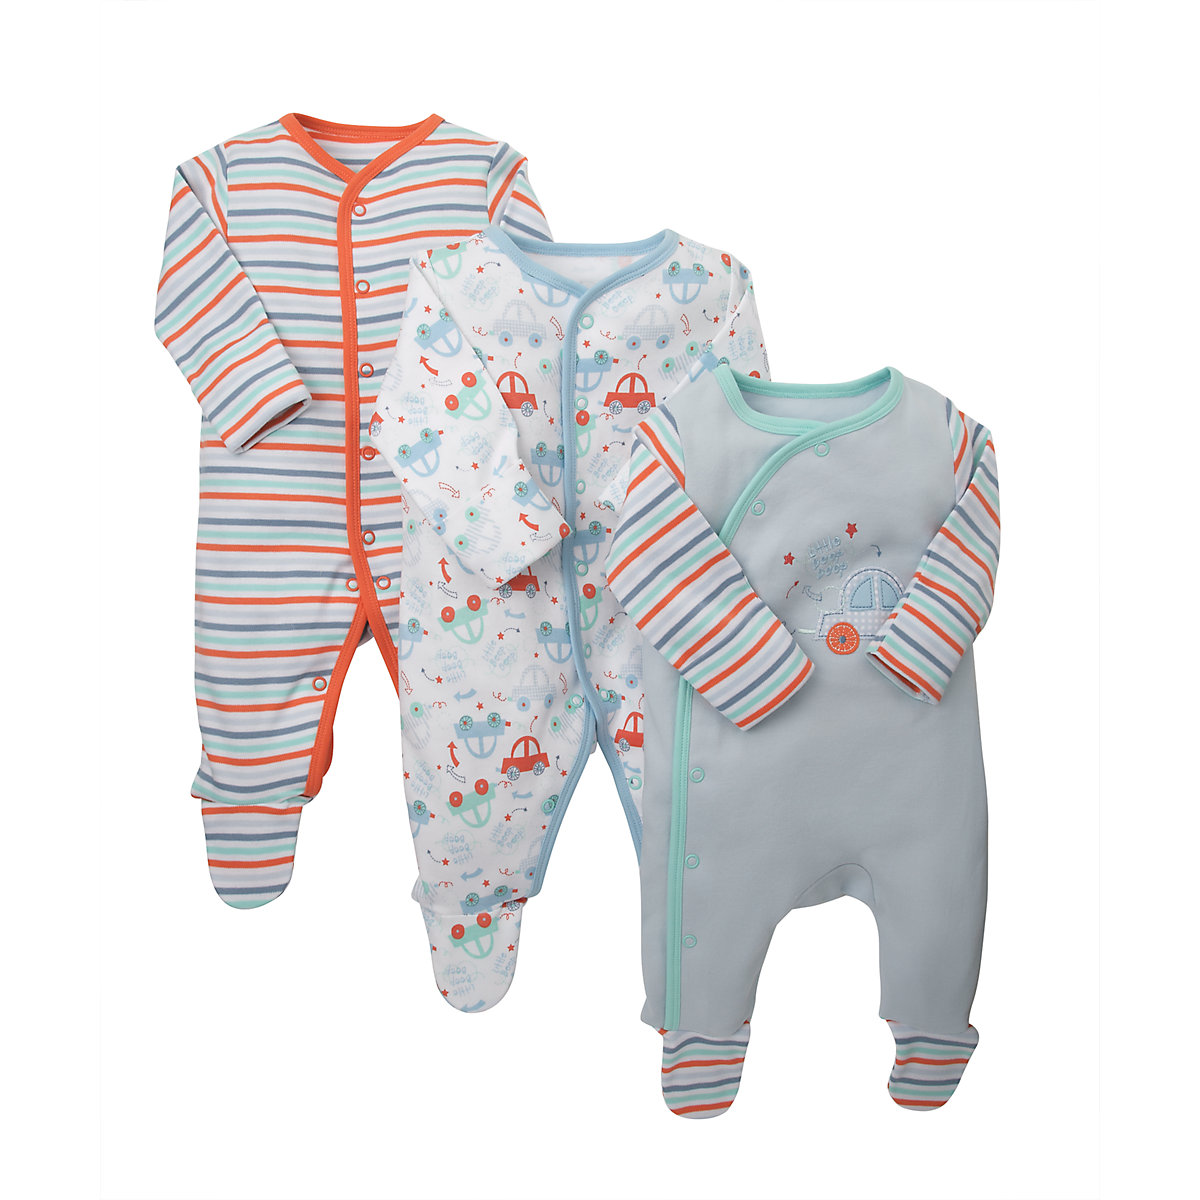 Baby Clothes Sale Uk Mothercare